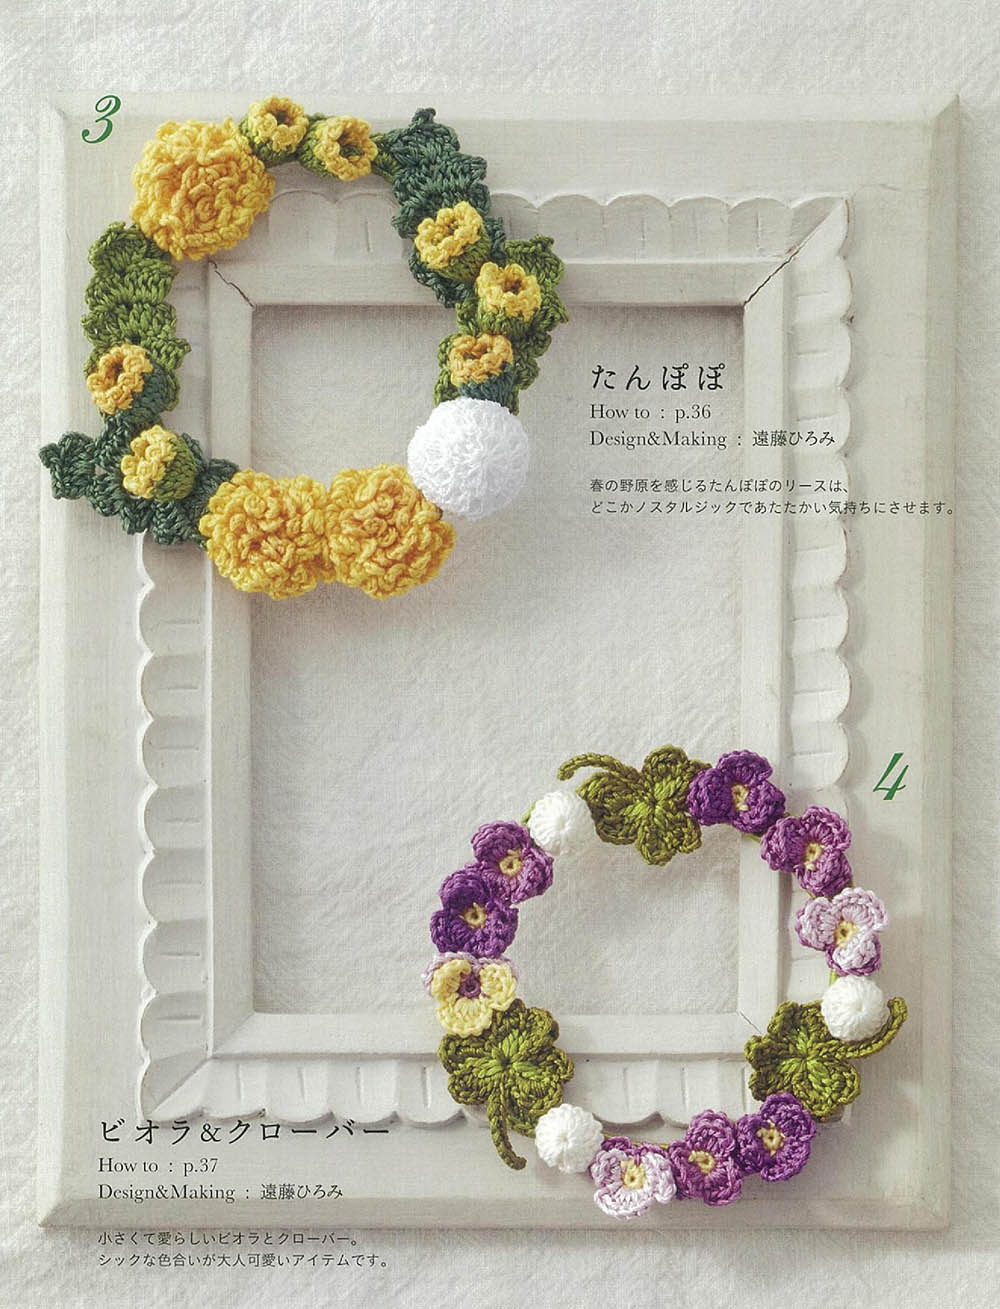 Flower bouquet & wreath crochet with embroidery thread